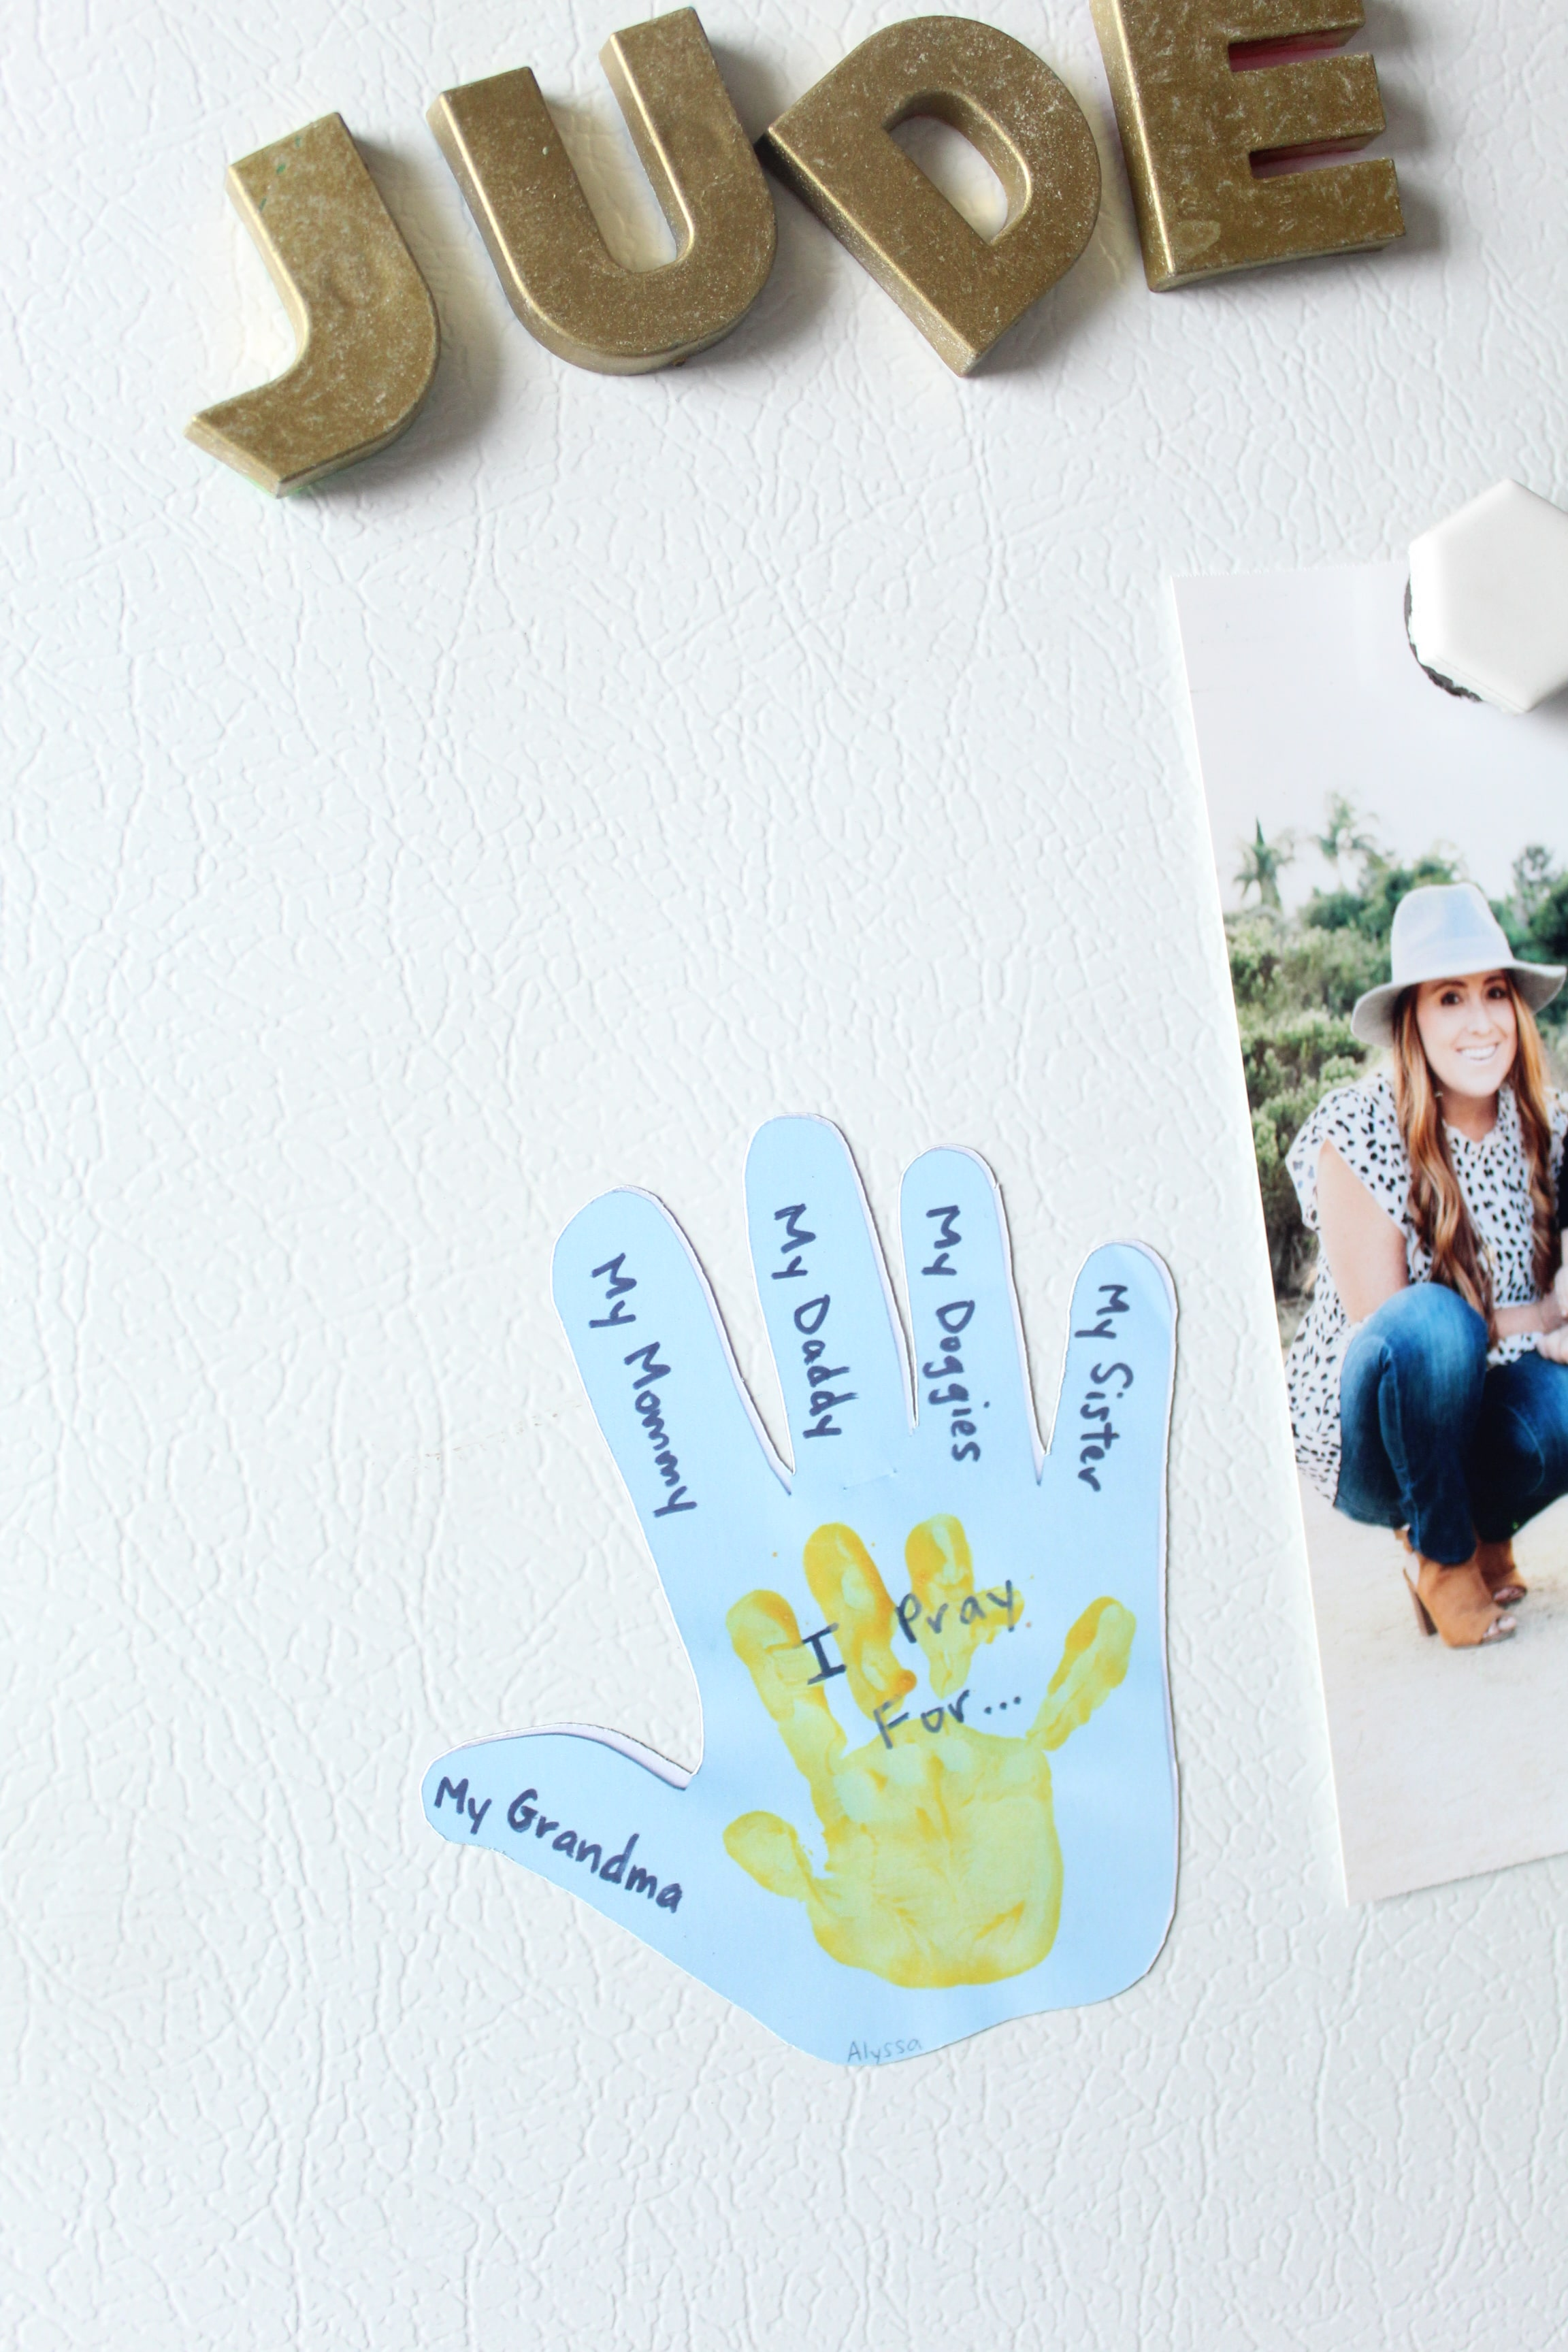 Turn your little one's artwork into magnets! You wont' want to miss this DIY!